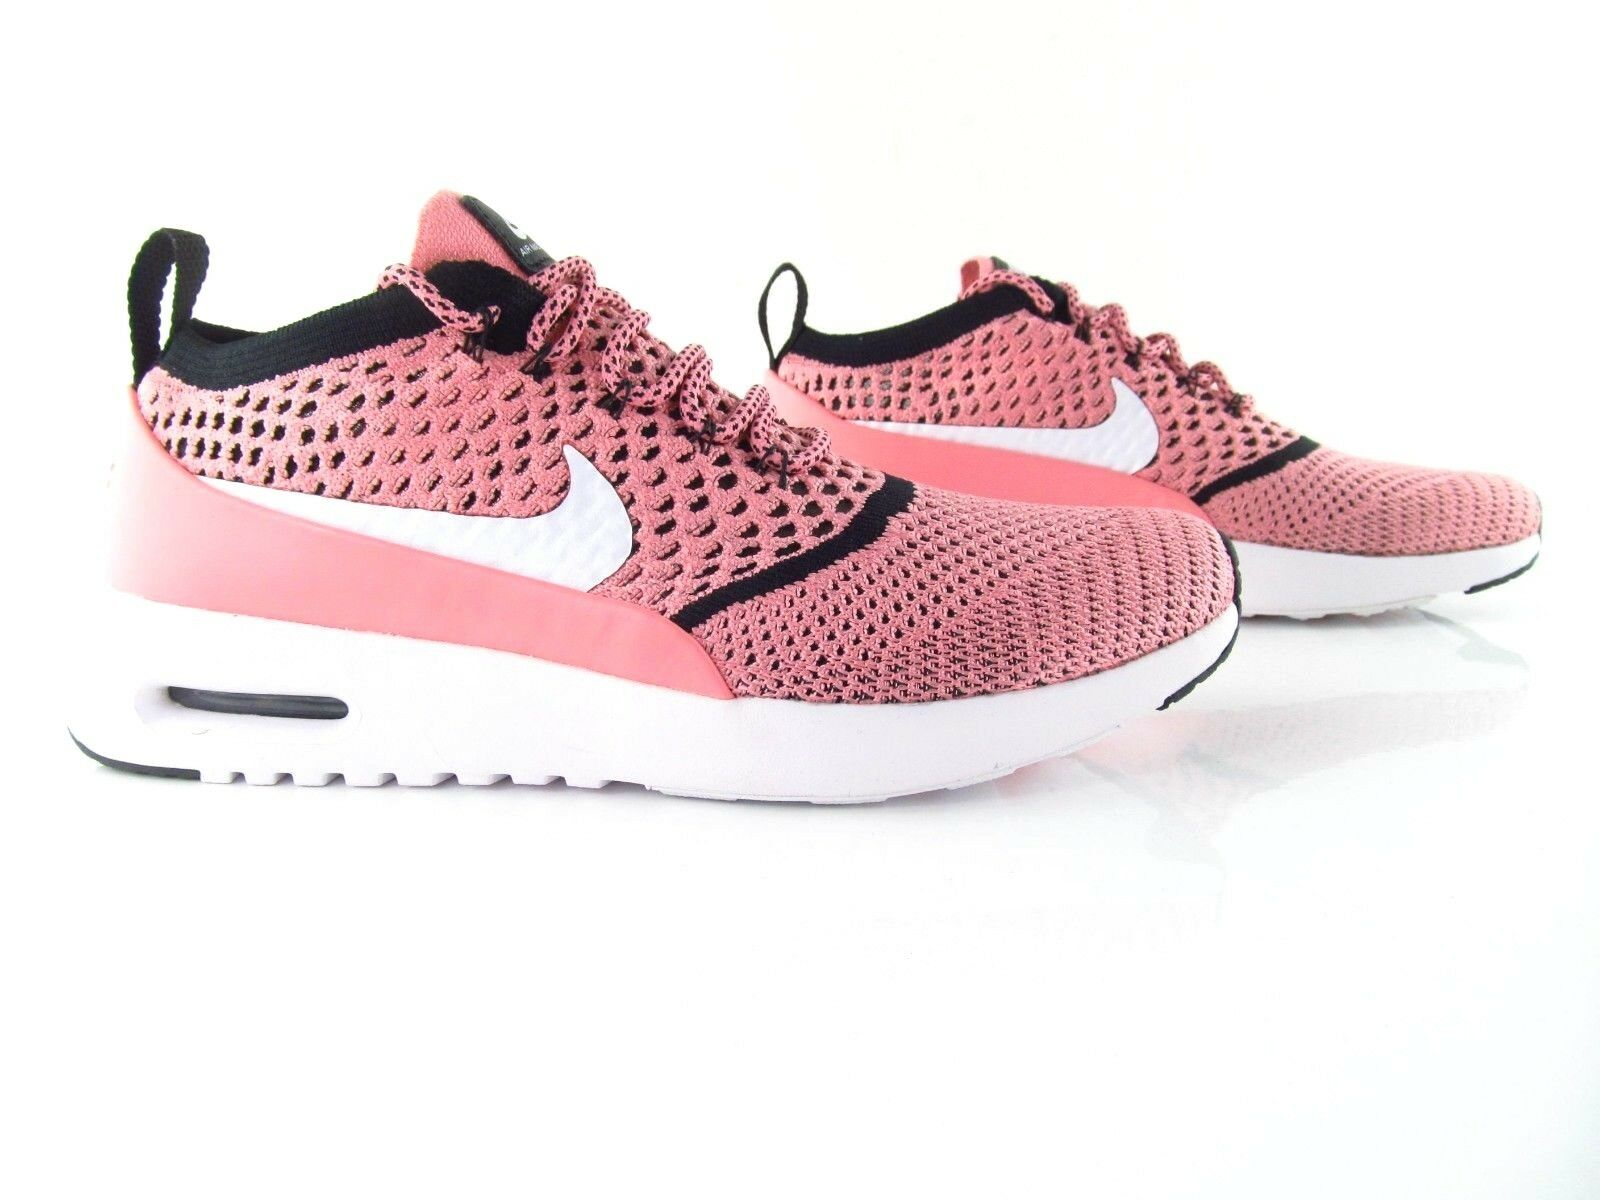 Nike Air Max Thea Ultra Flyknit Premium 90 Rose uk_7.5 us_10 EUR 42